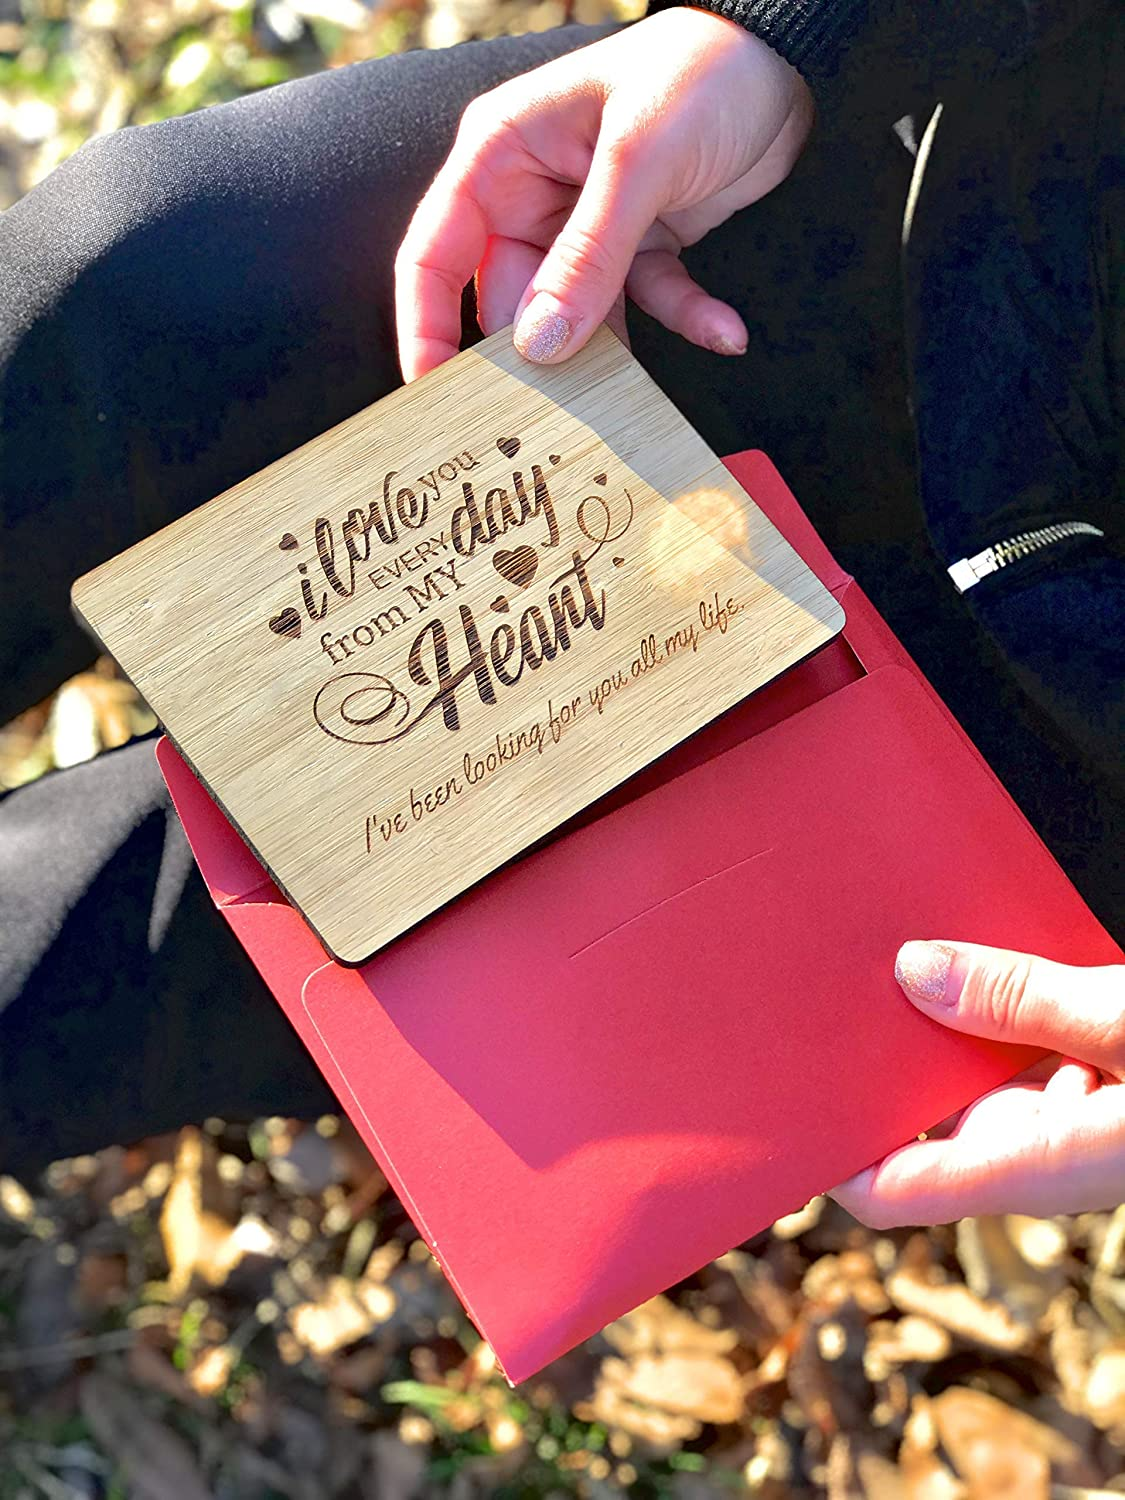 Gift for Him or Her Woman/'s Day Love Every Day from My Heart Husband or Wife Fiancee Girlfriend or Boyfriend Anniversary Zuaart Love Greeting Card Handmade with Real Bamboo Wood and Stand